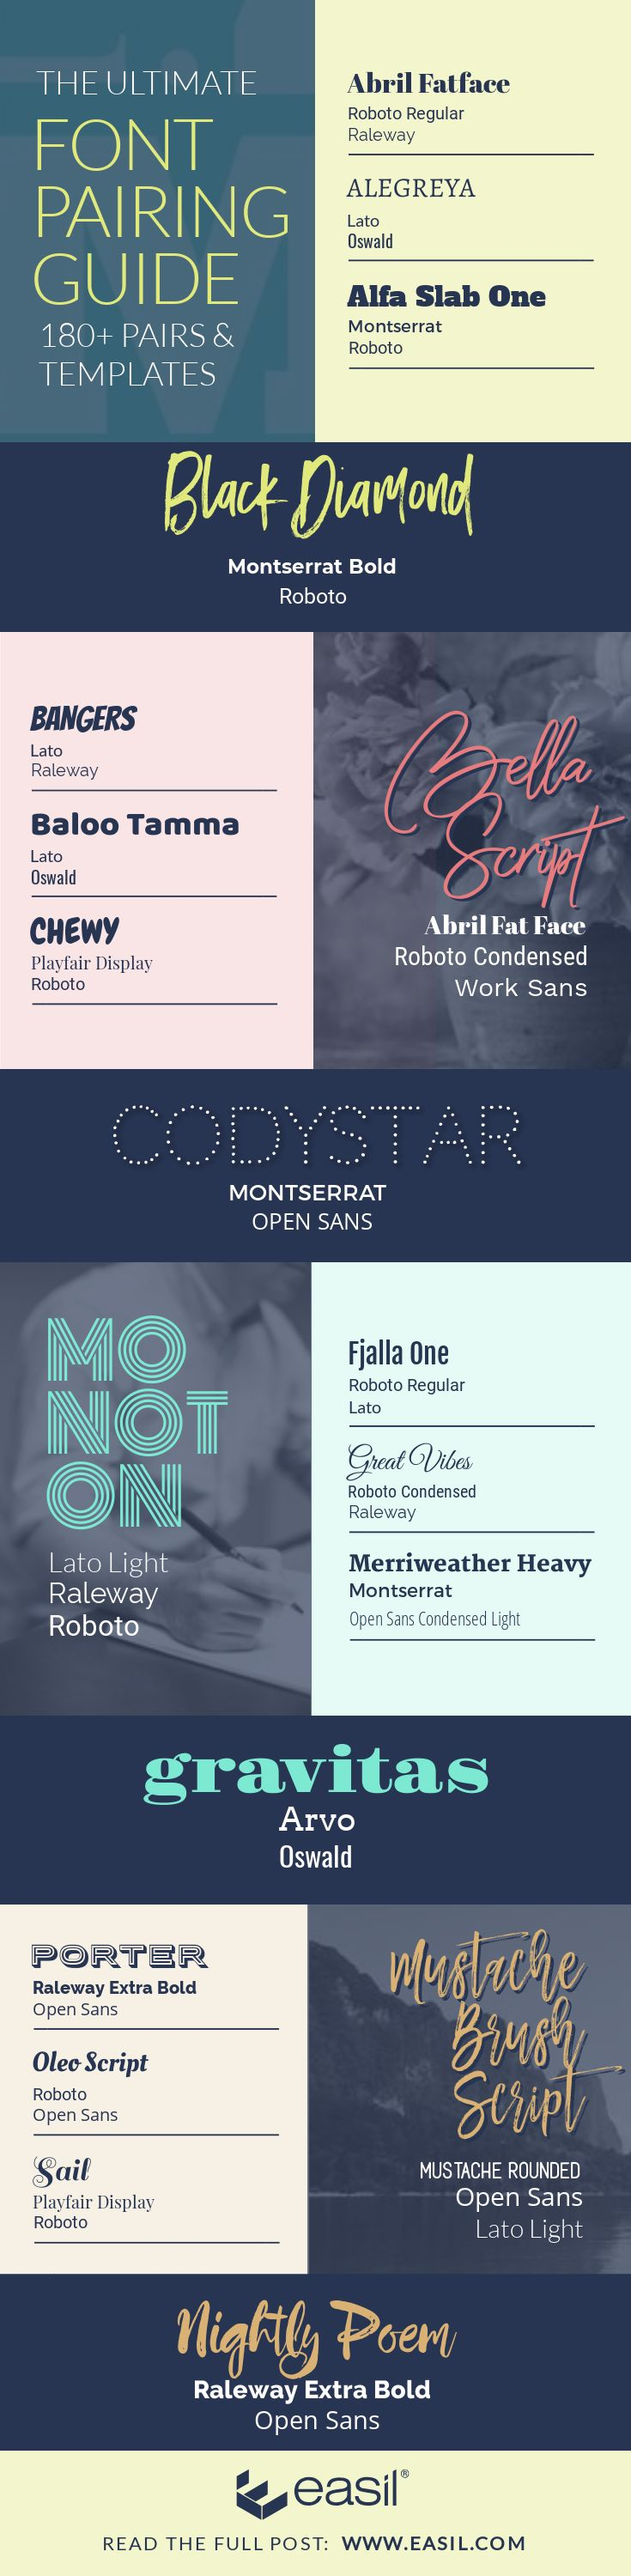 The Ultimate Free Font Pairing Guide 180 Examples Plus Templates Easil